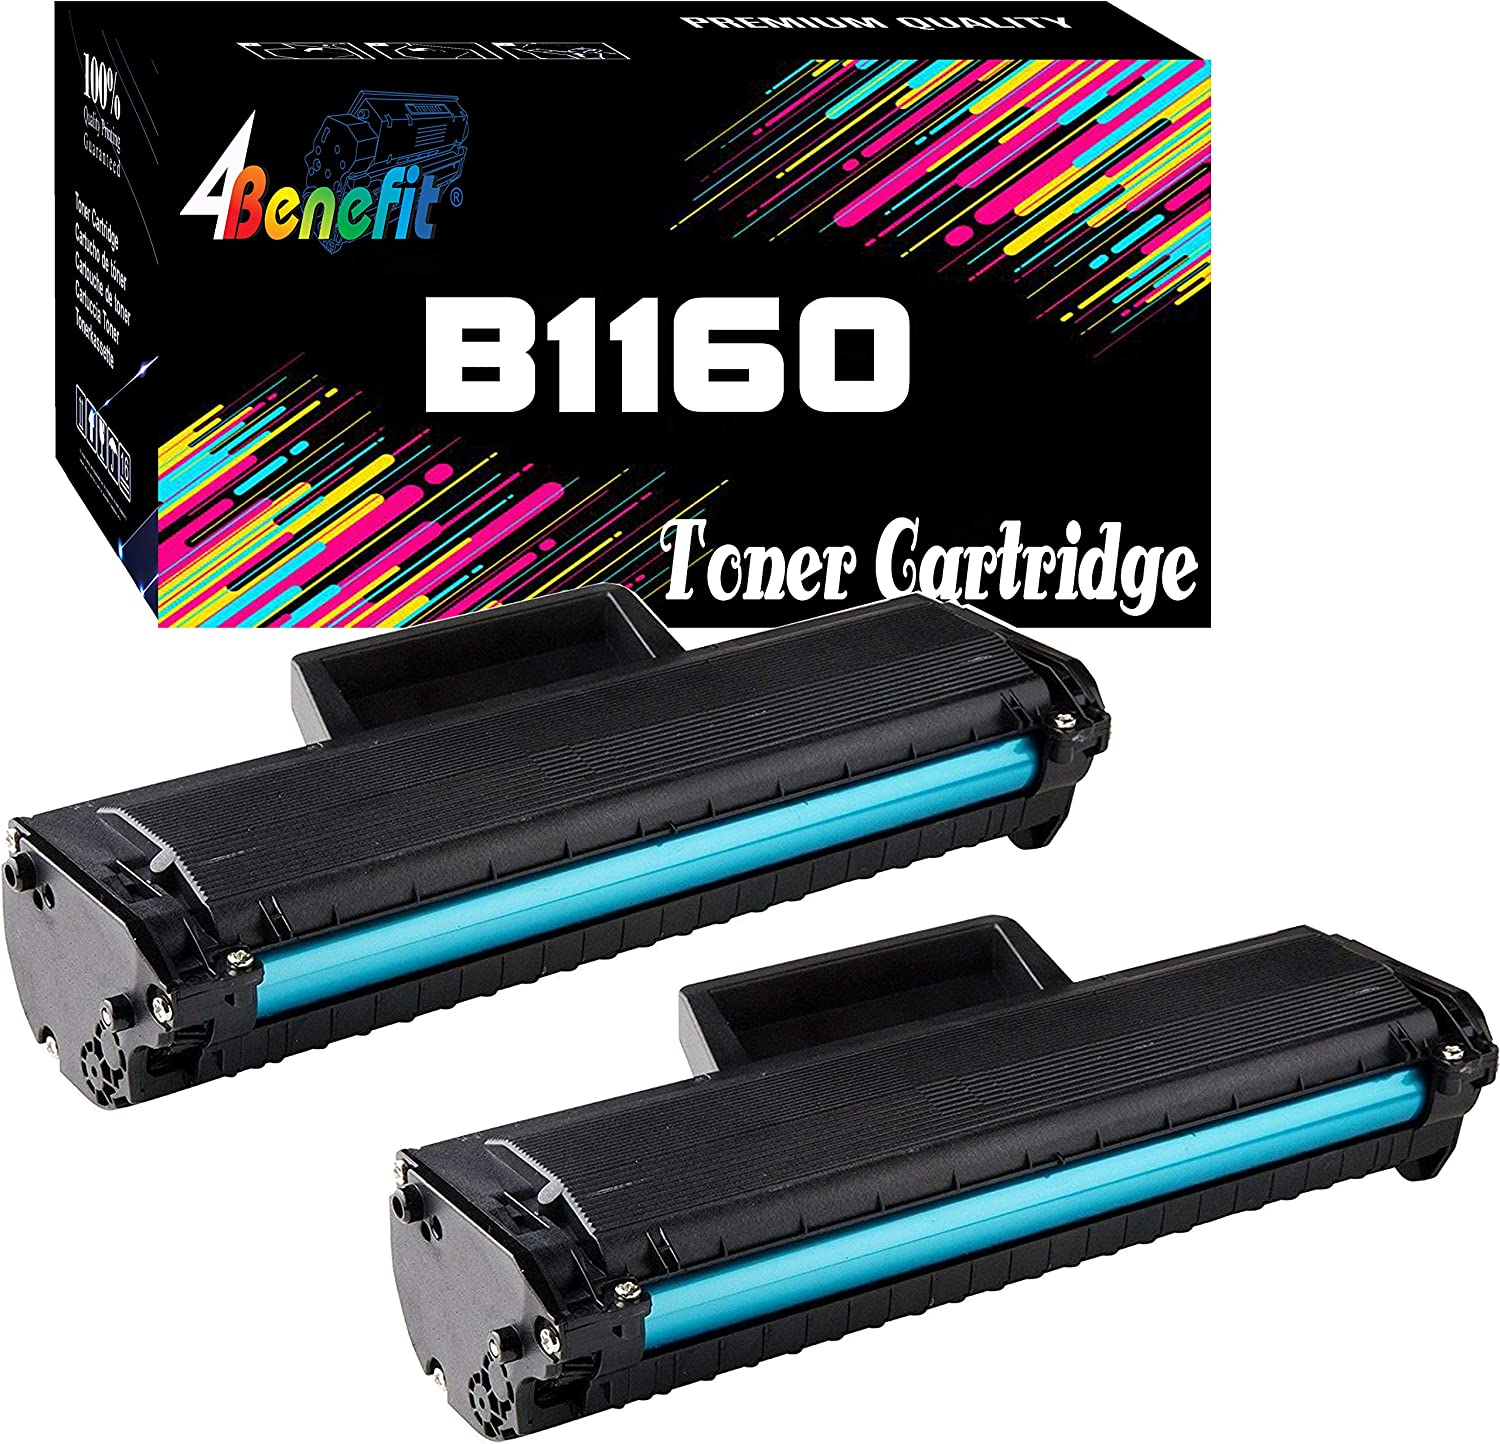 4Benefit Replacement Compatible Toner Cartridge Replacement For Dell B1160 Laser Printer B1163w, B1165nfw, B1160, B1160W (2-Pack)